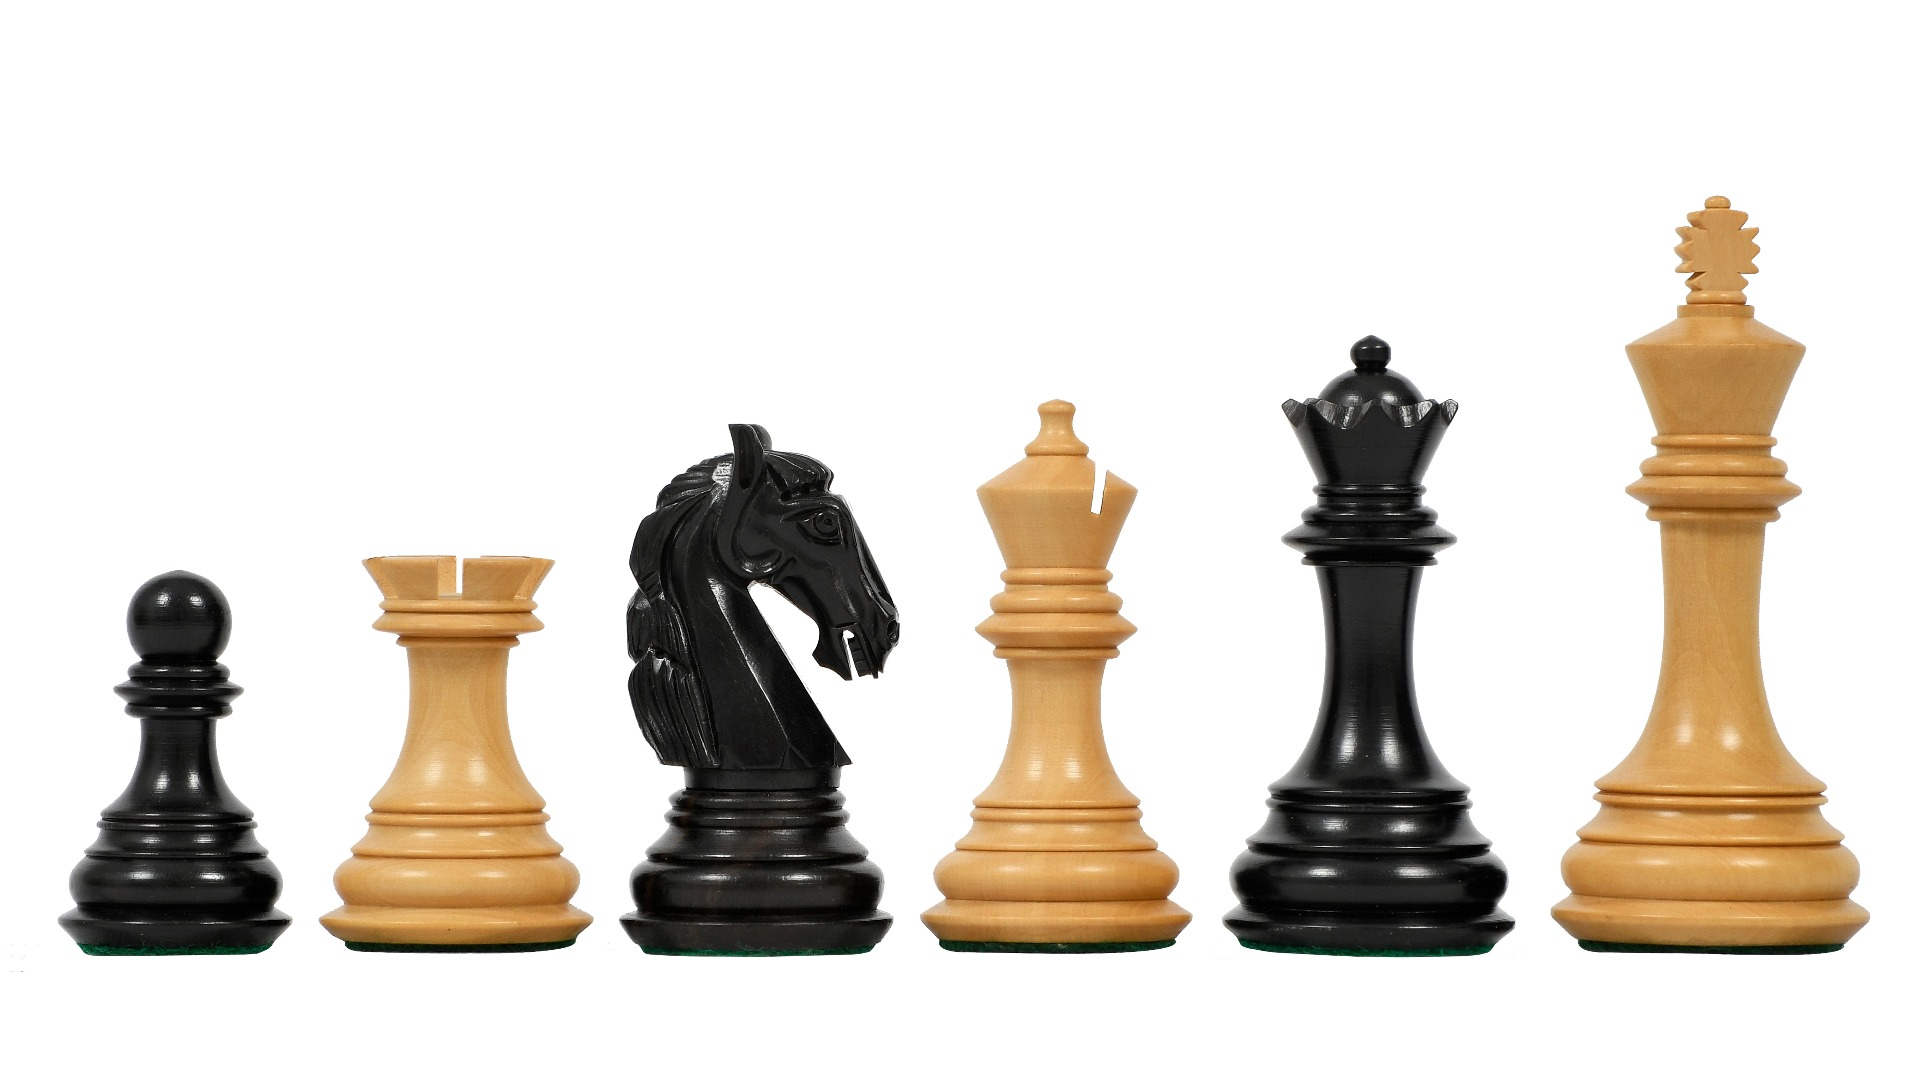 """The New Columbian Staunton Series Chess Pieces in Ebony Wood & Box wood - 3.8"""" King"""